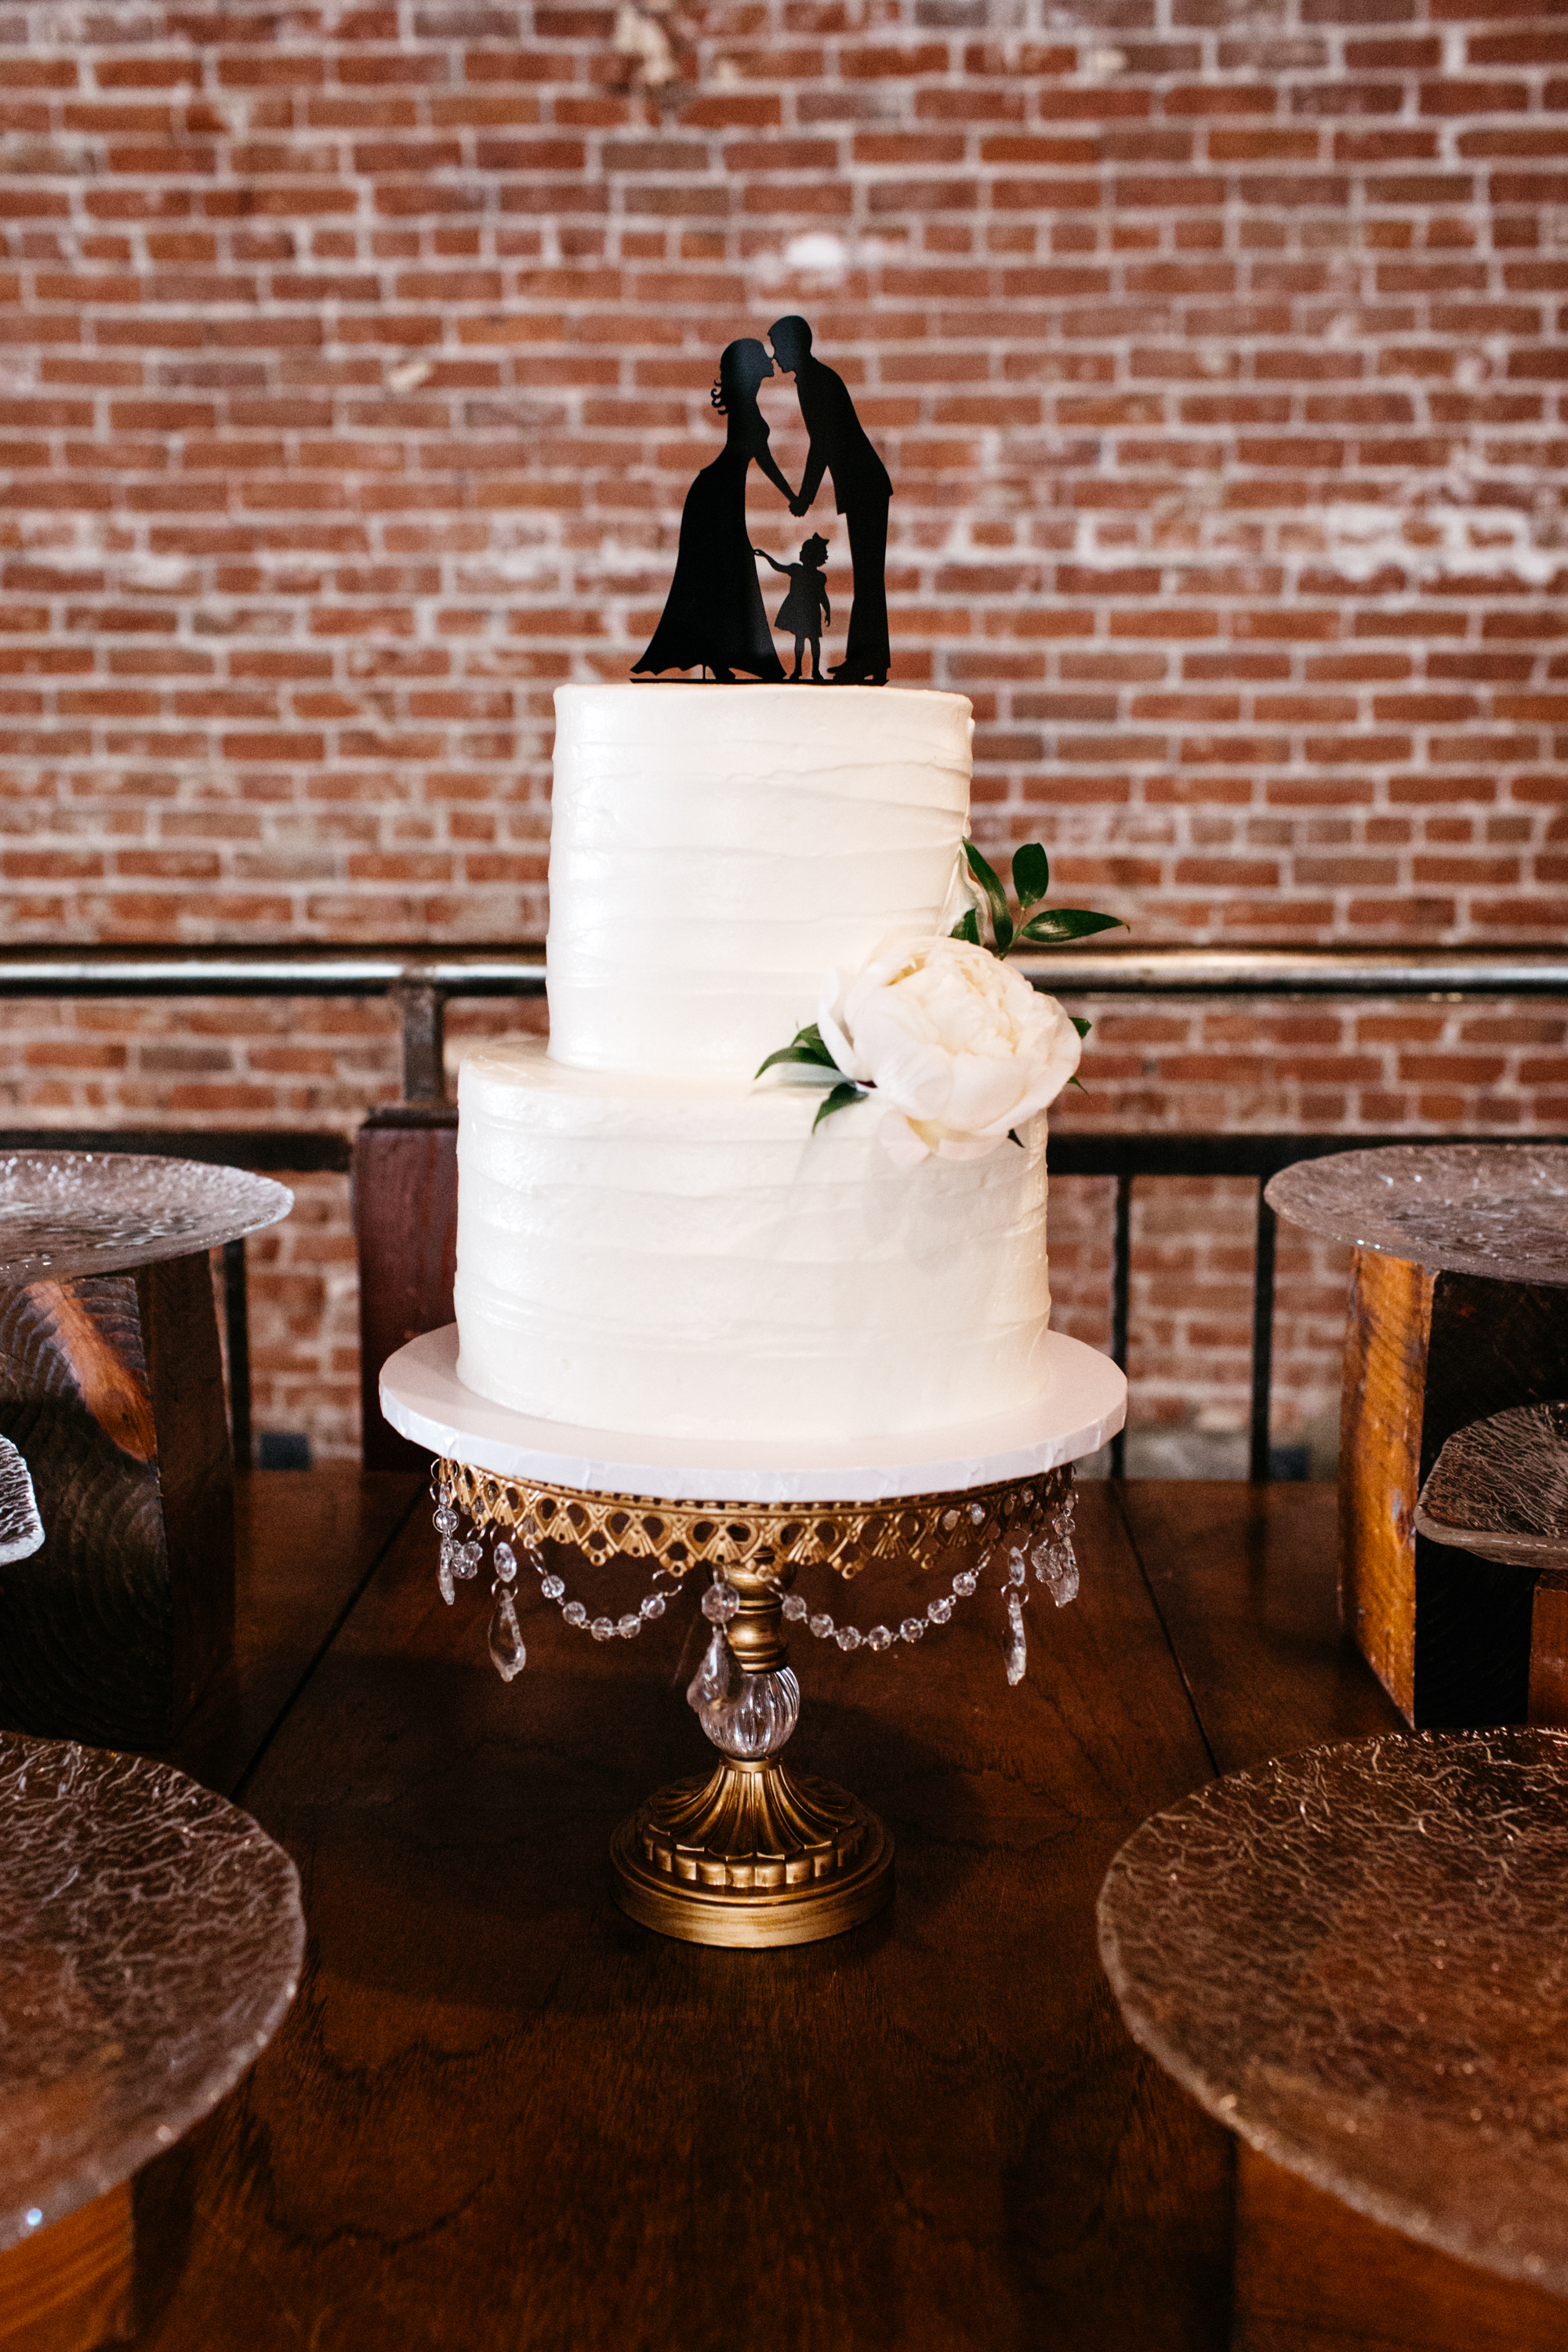 SamErica Studios - Los Angeles Wedding Photographer - The Loft on Pine-32.jpg